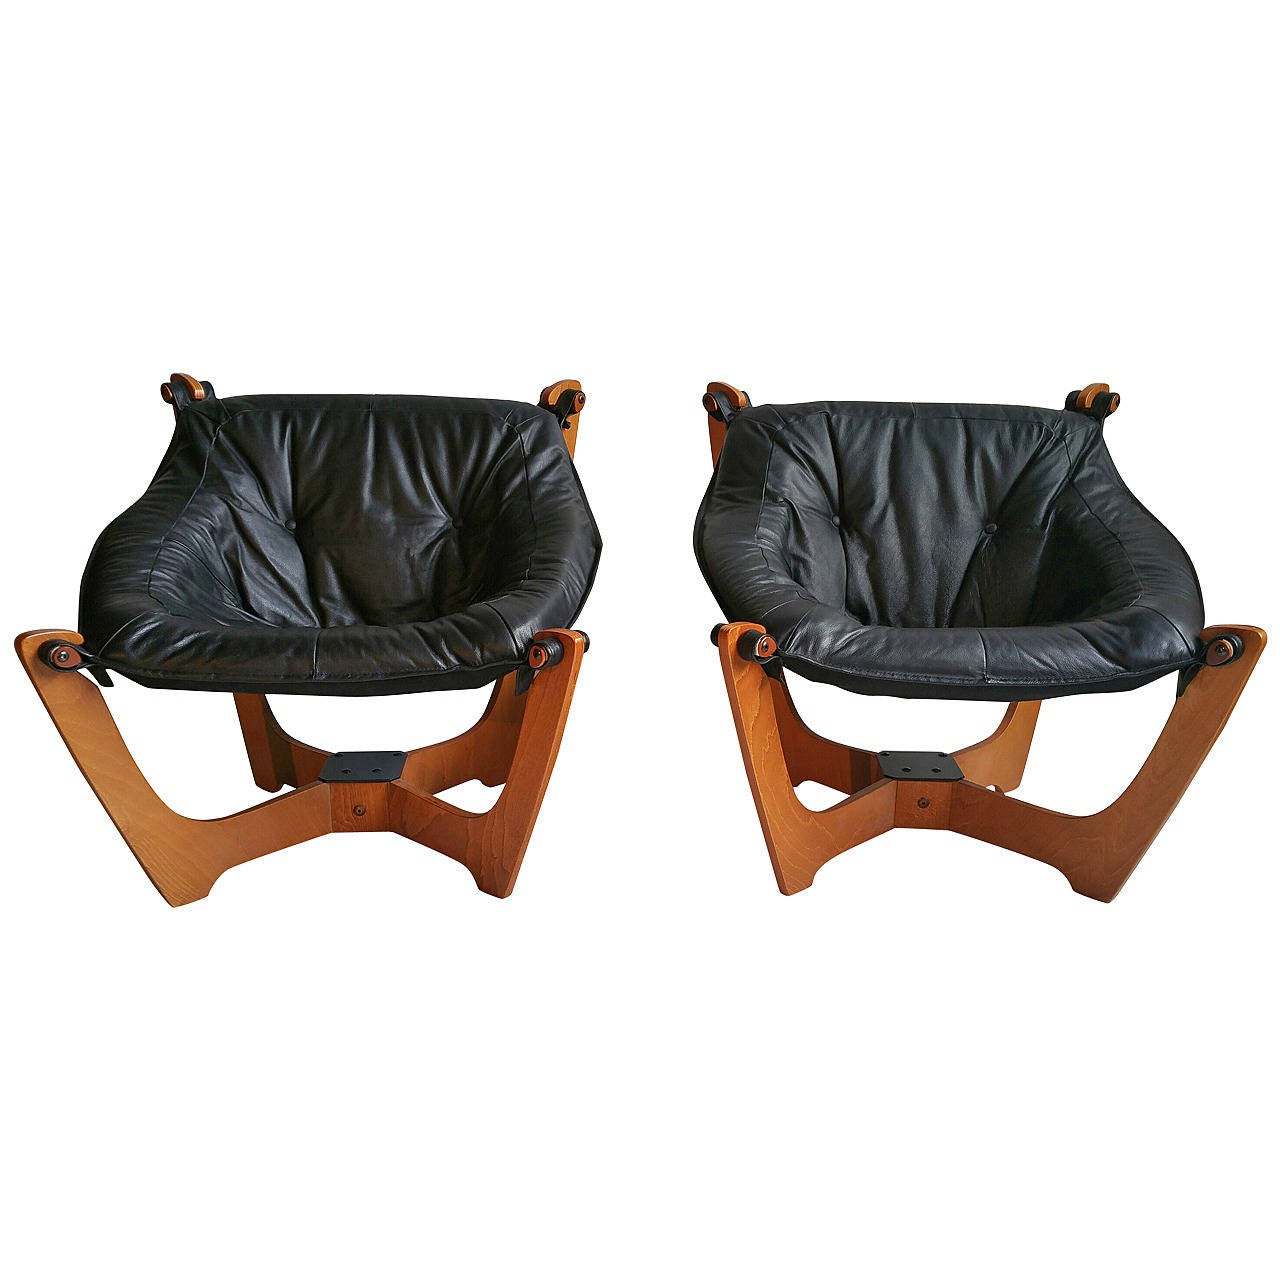 Pair Of Vintage Danish Mid Century Modern Møbler Luna Leather Sling Chairs  For Sale